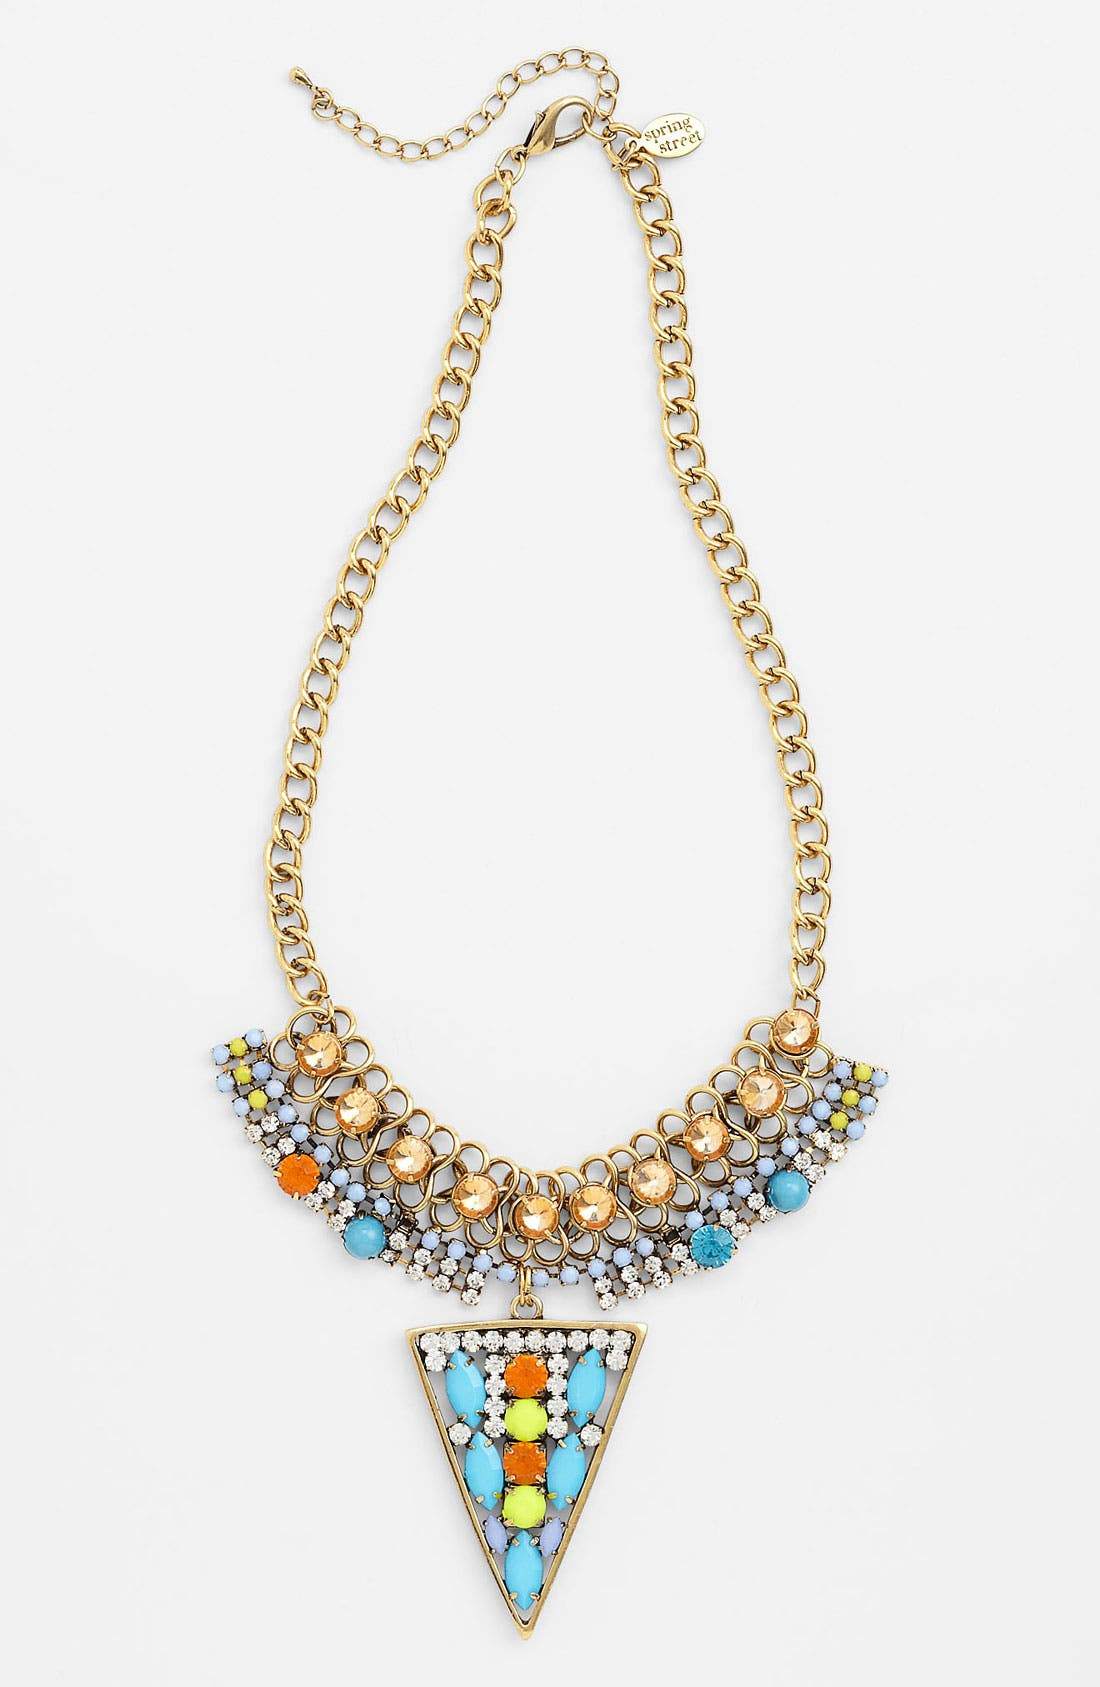 Alternate Image 1 Selected - Spring Street 'Crystal Details' Necklace (Nordstrom Exclusive)